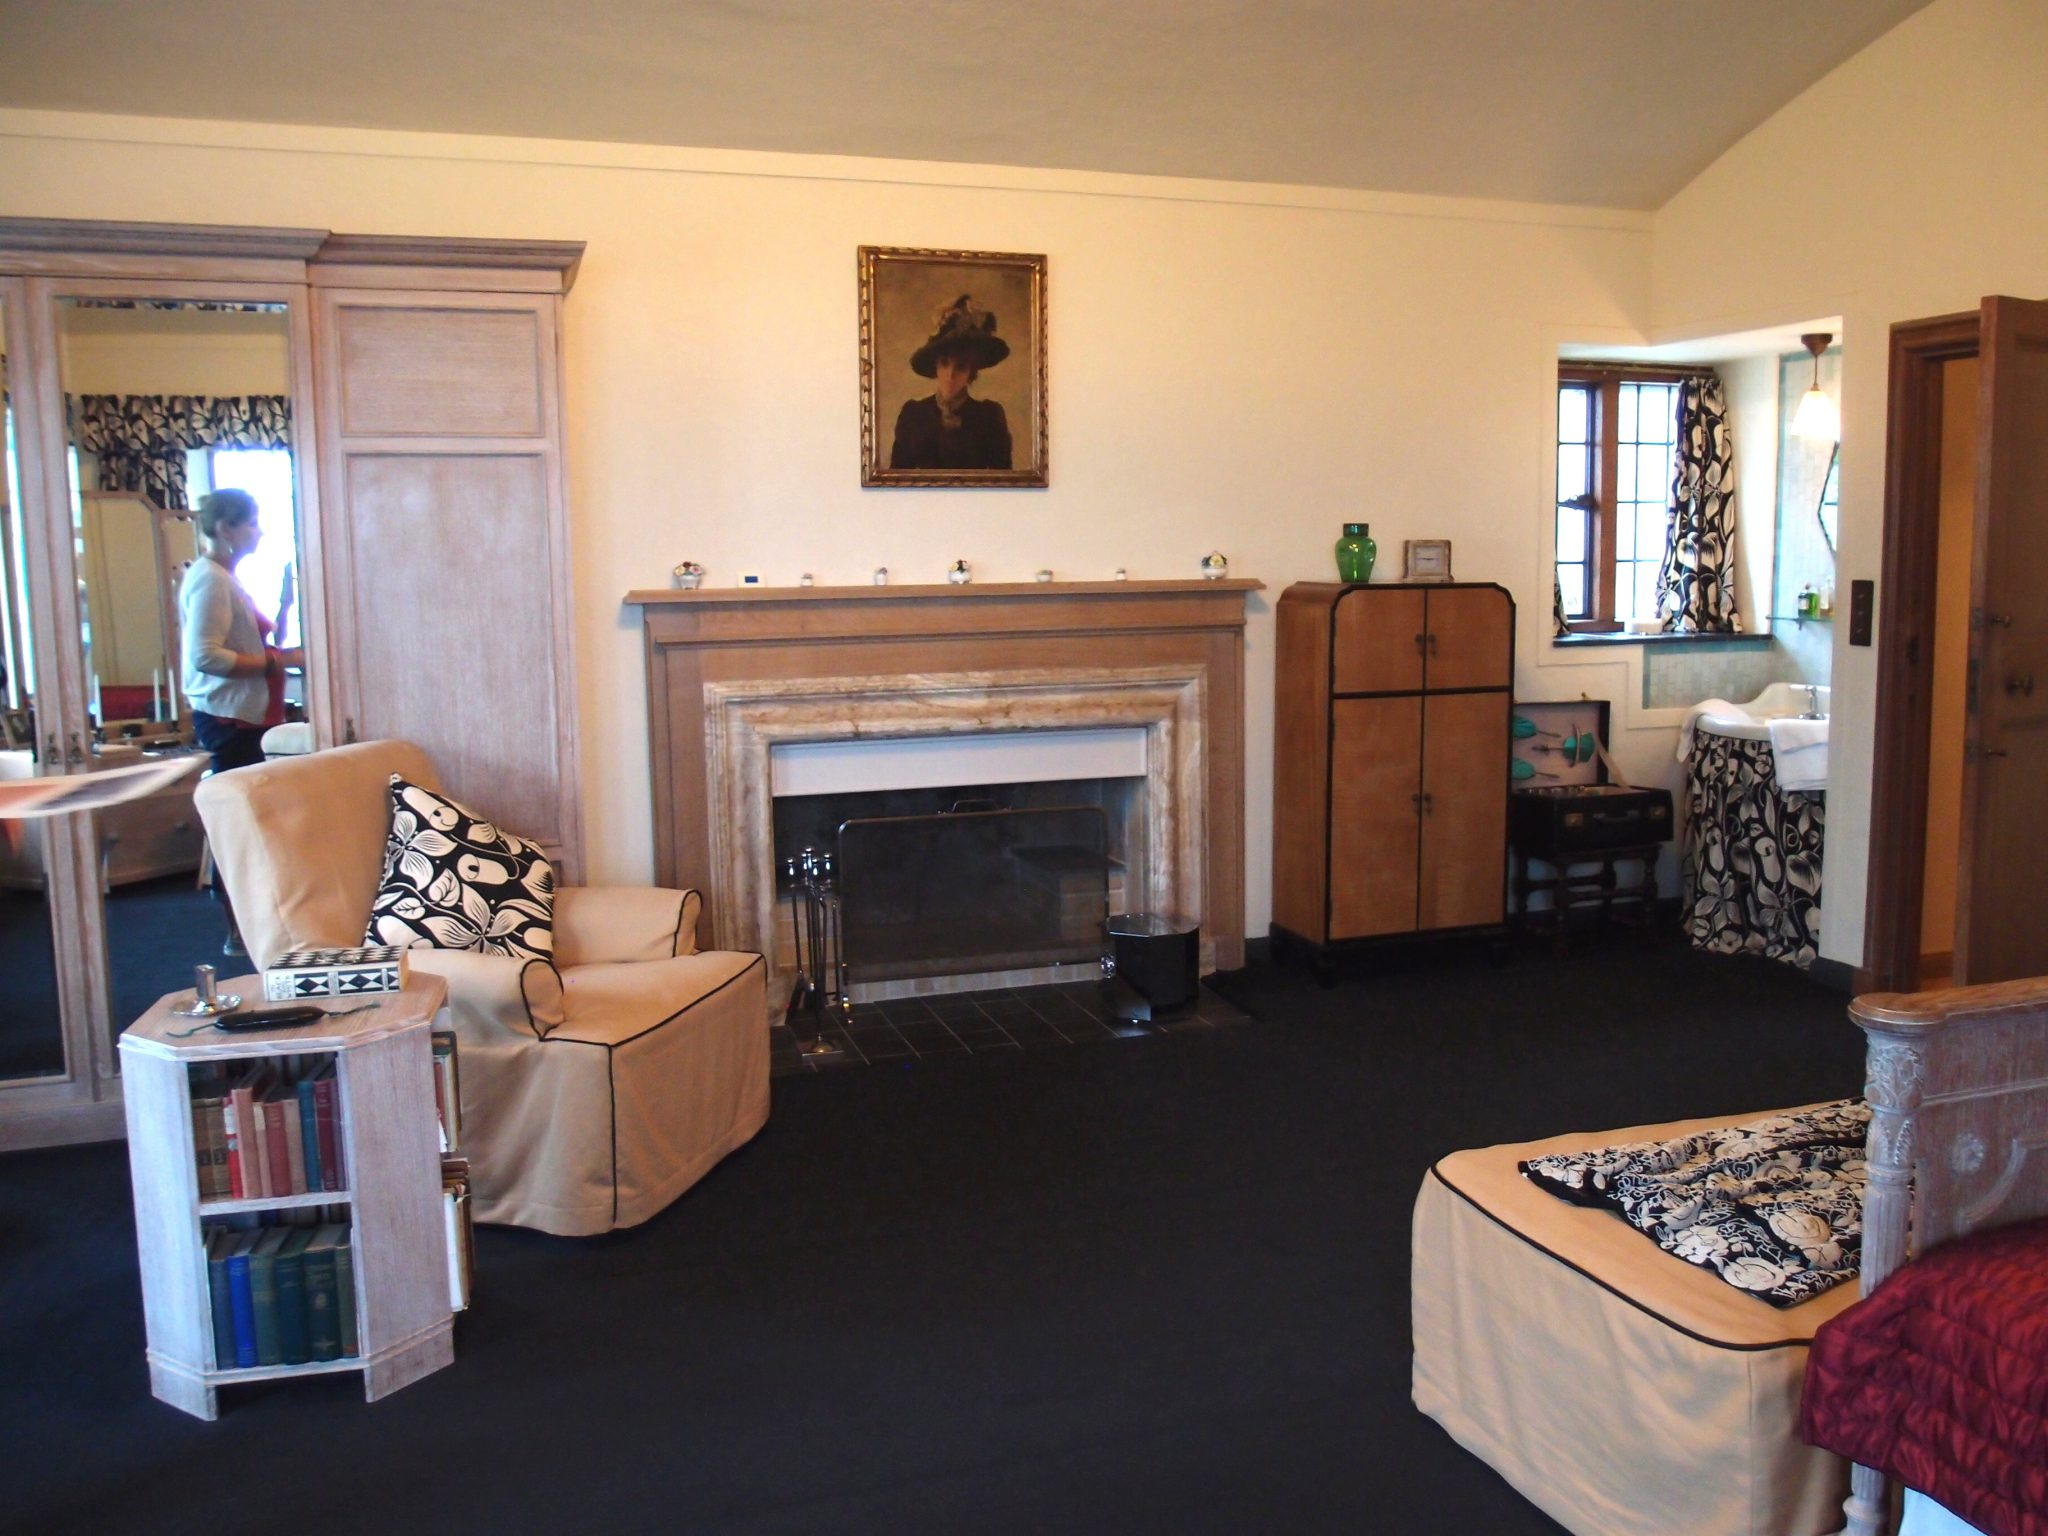 In Dorothy's Bedroom: the over-mantle painting is original to the House, as is the cupboard to the right of the fireplace. The near-black Axminster carpet was woven to replace the original.